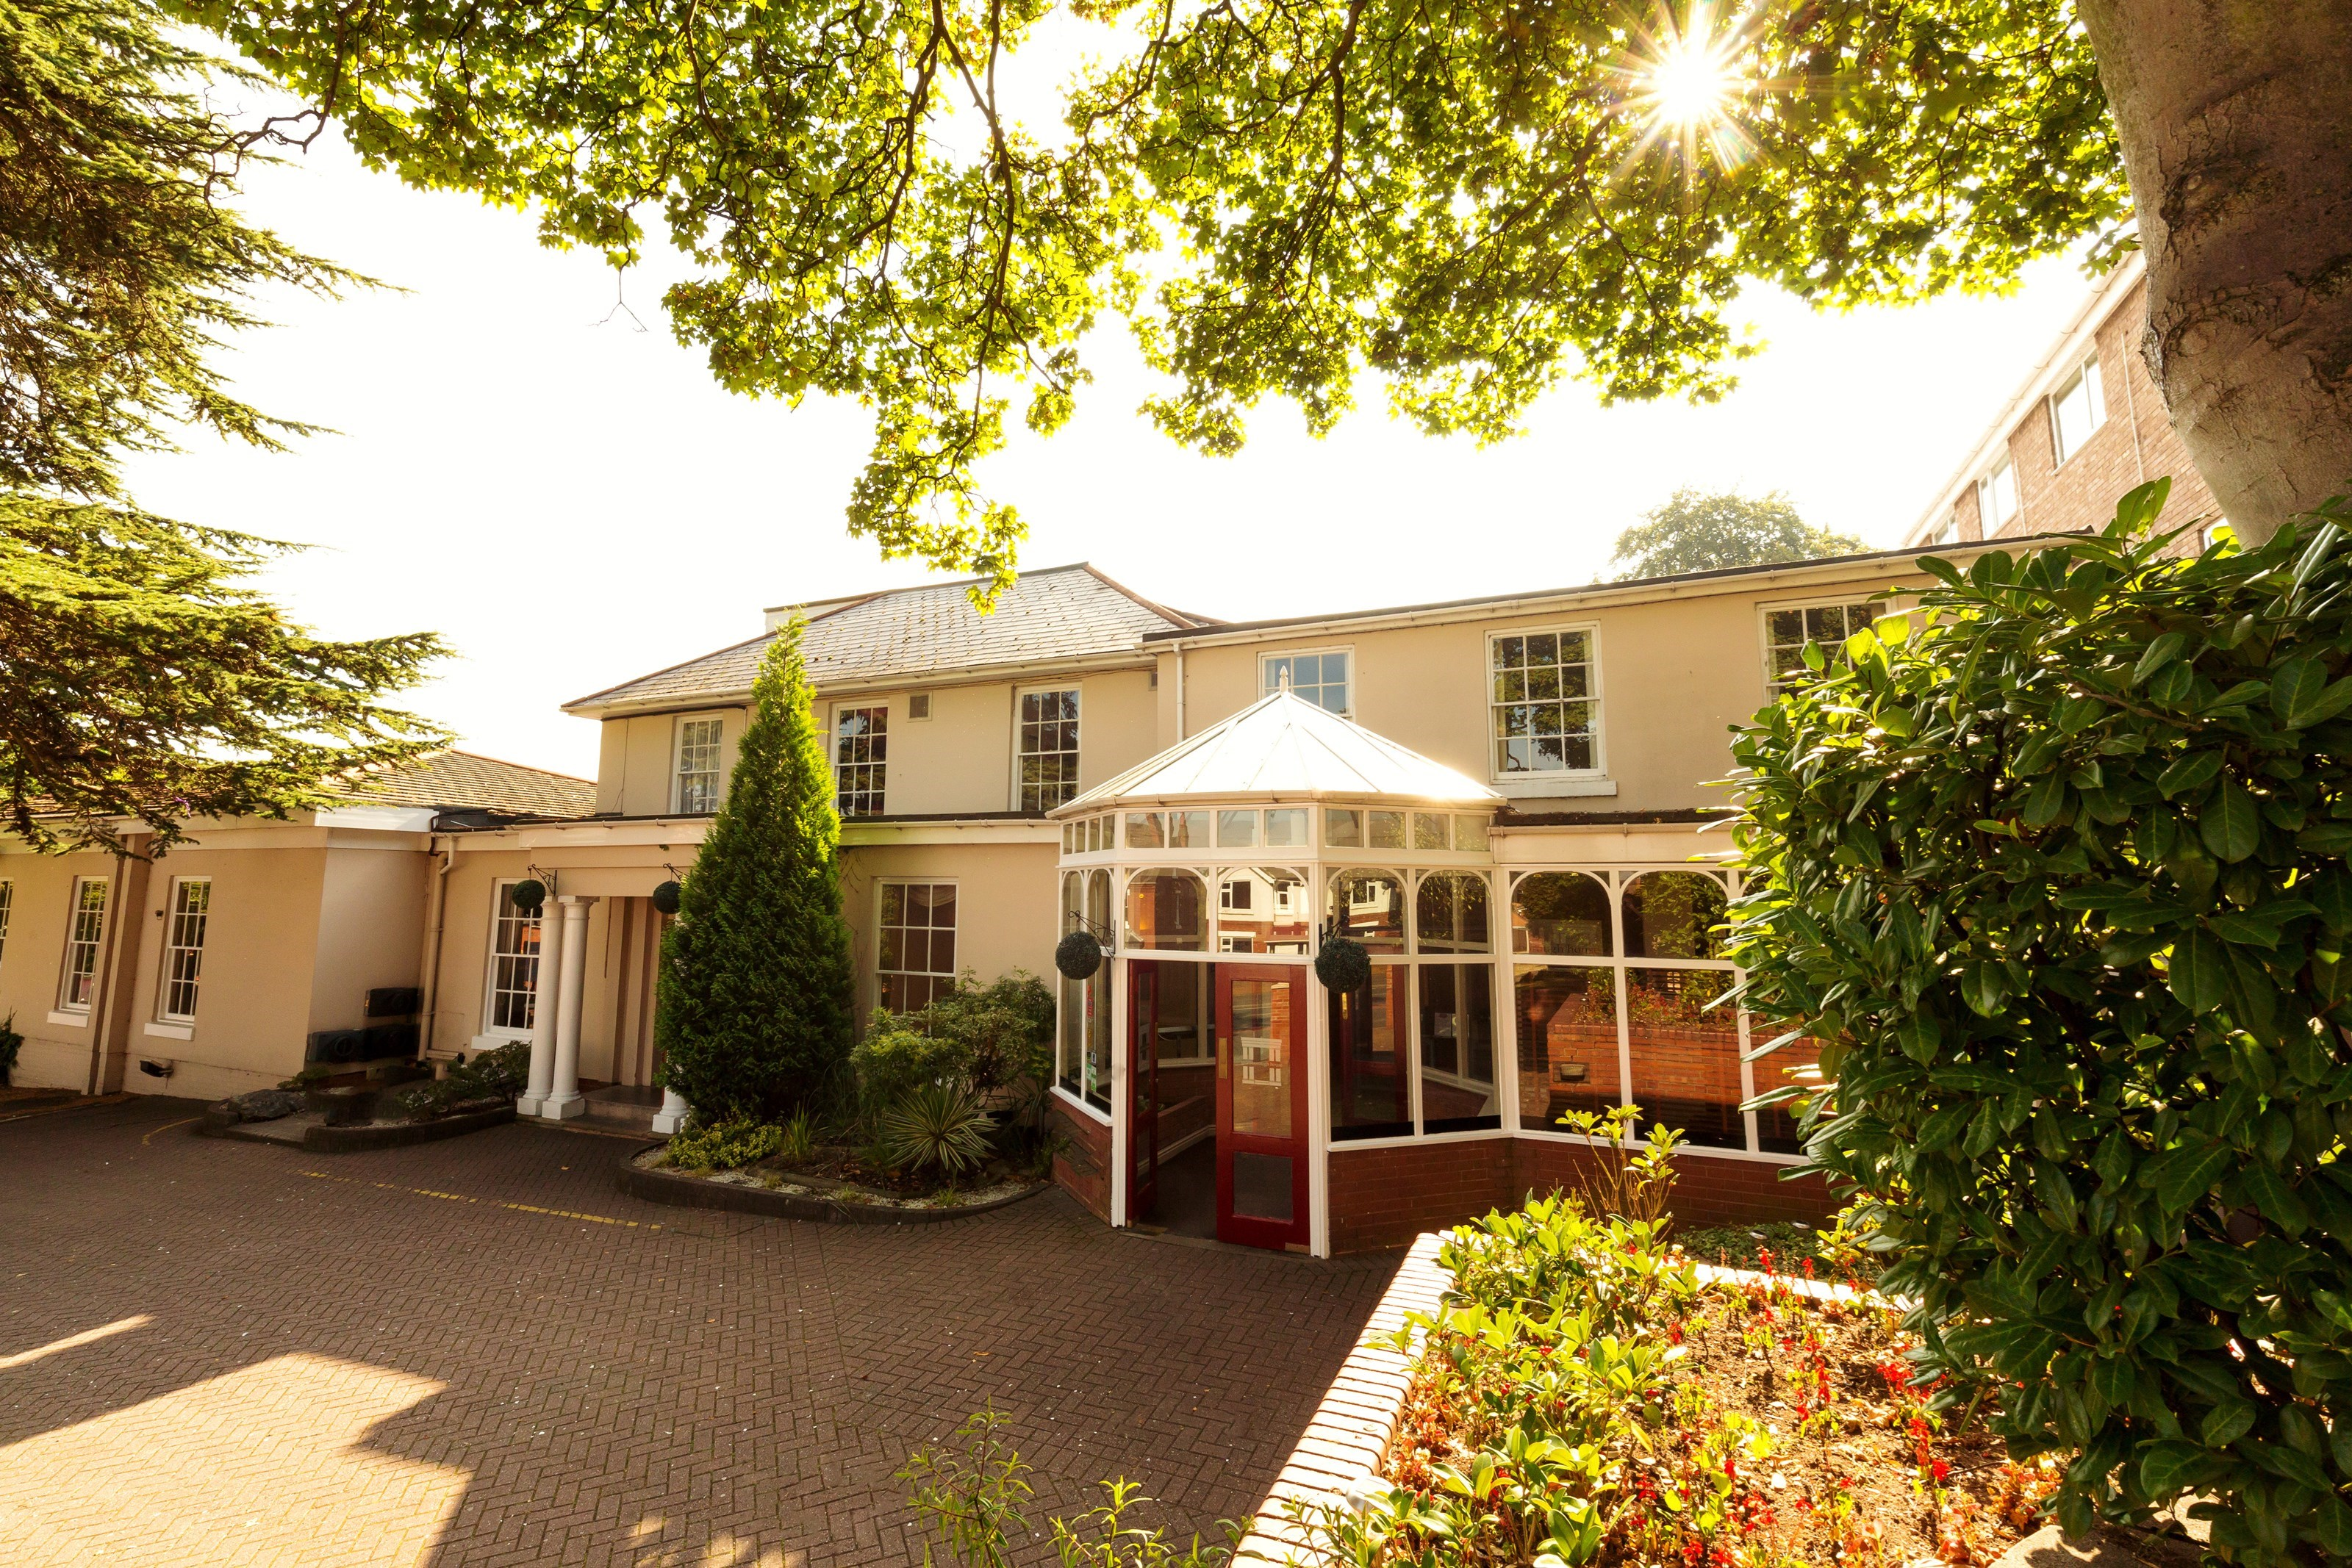 Picture of Gainsborough House Hotel